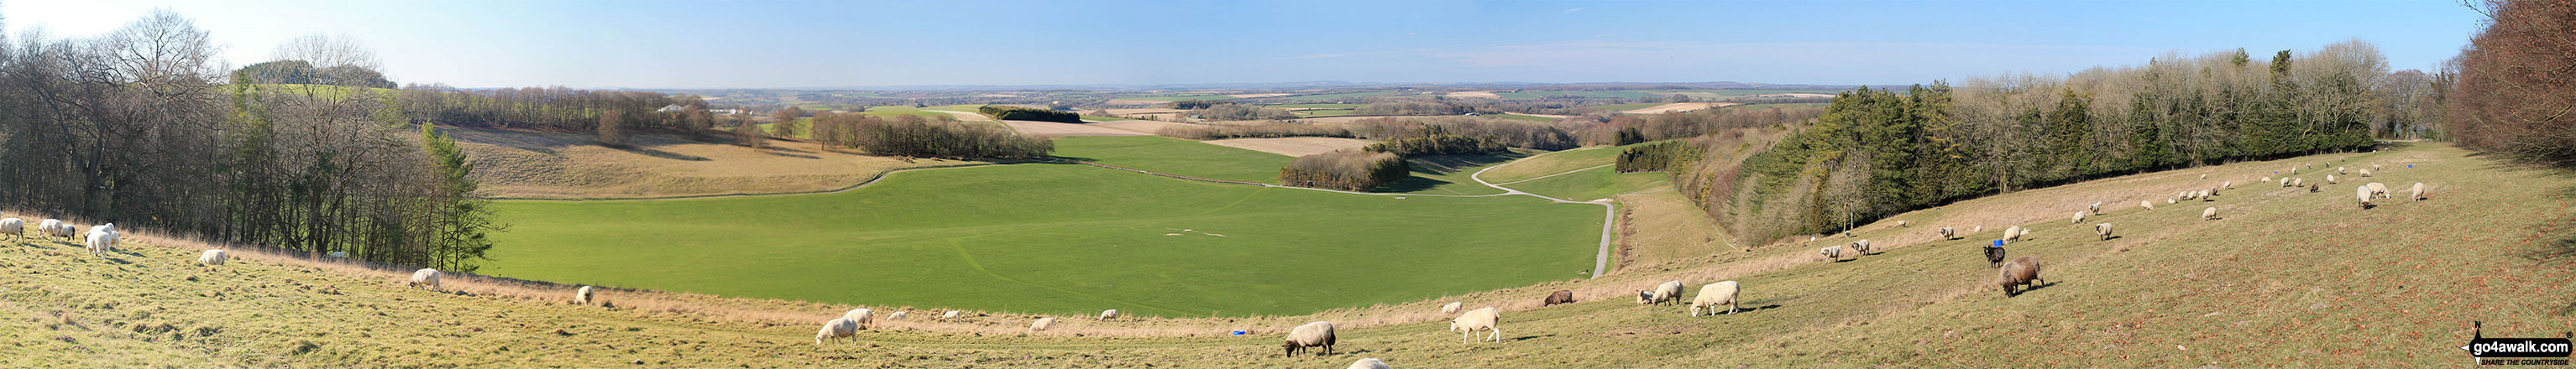 Panoramic view from Cheesefoot Head (Matterley Bowl)